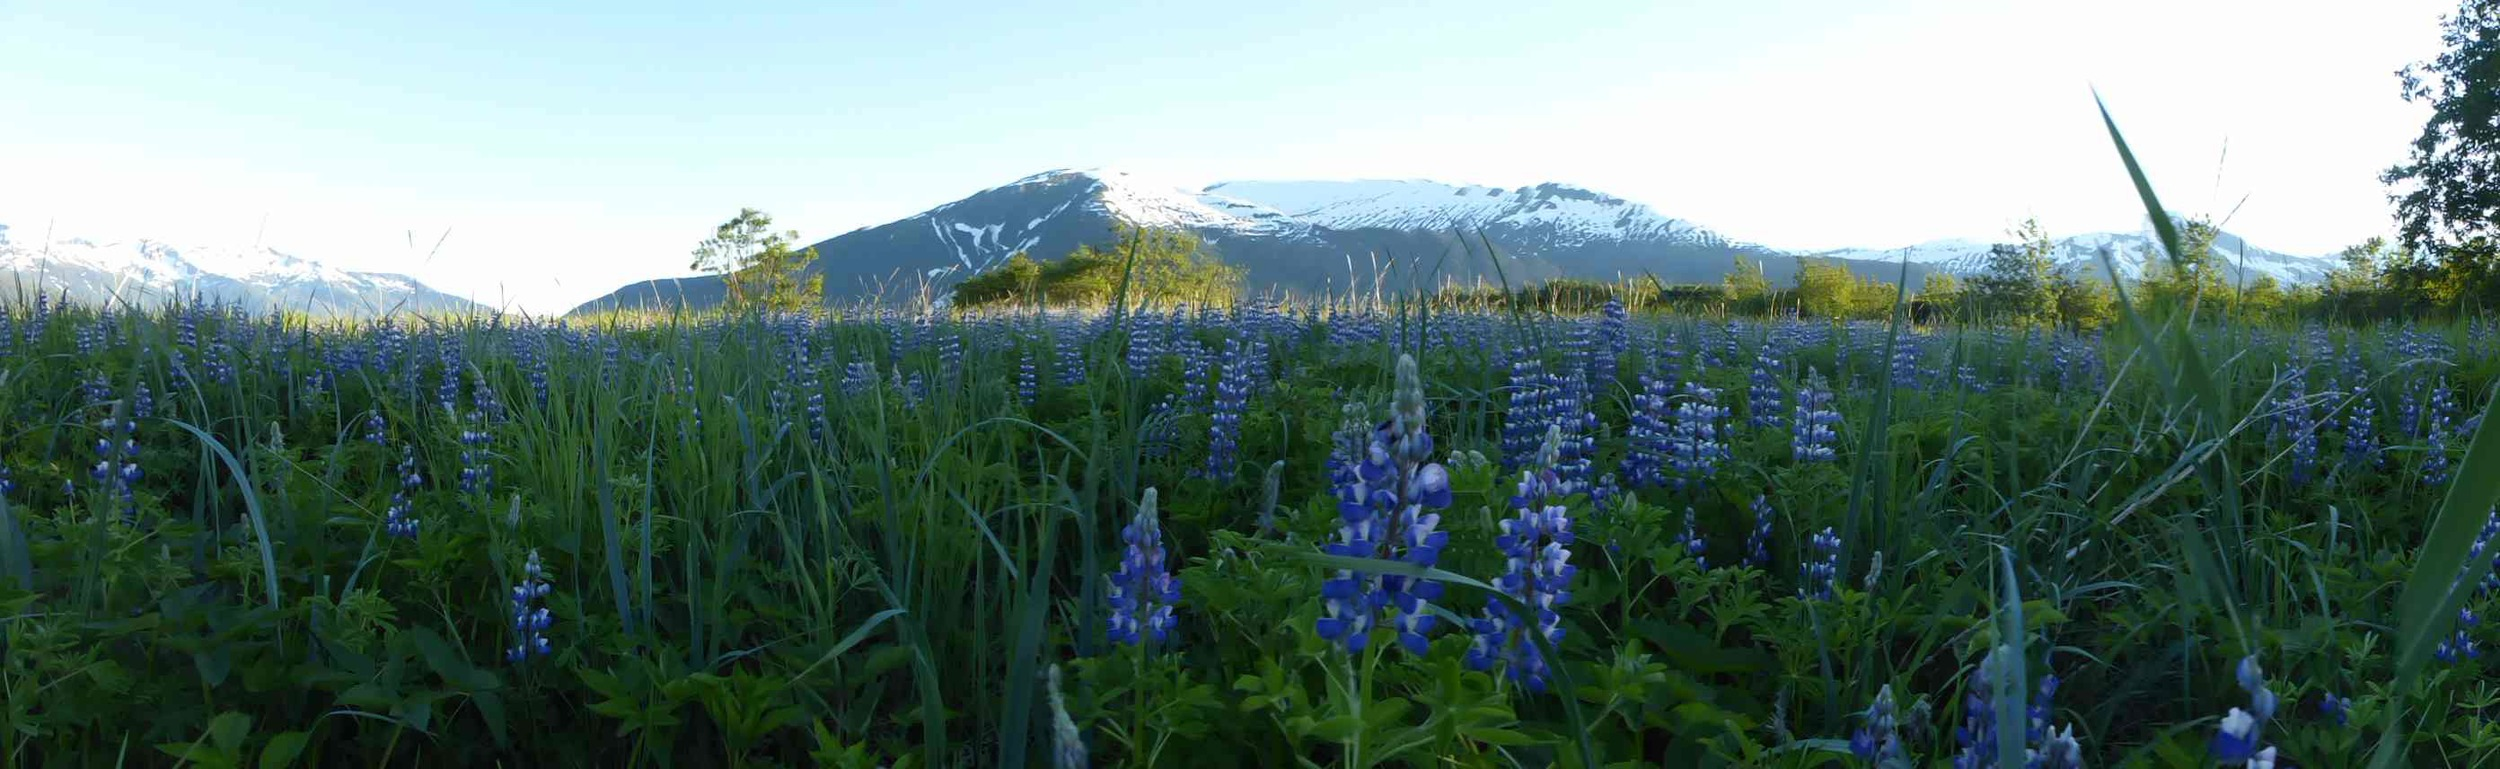 A panoramic view from our campsite of mountains with lupine in the foreground. Photo: Brooke Stamper